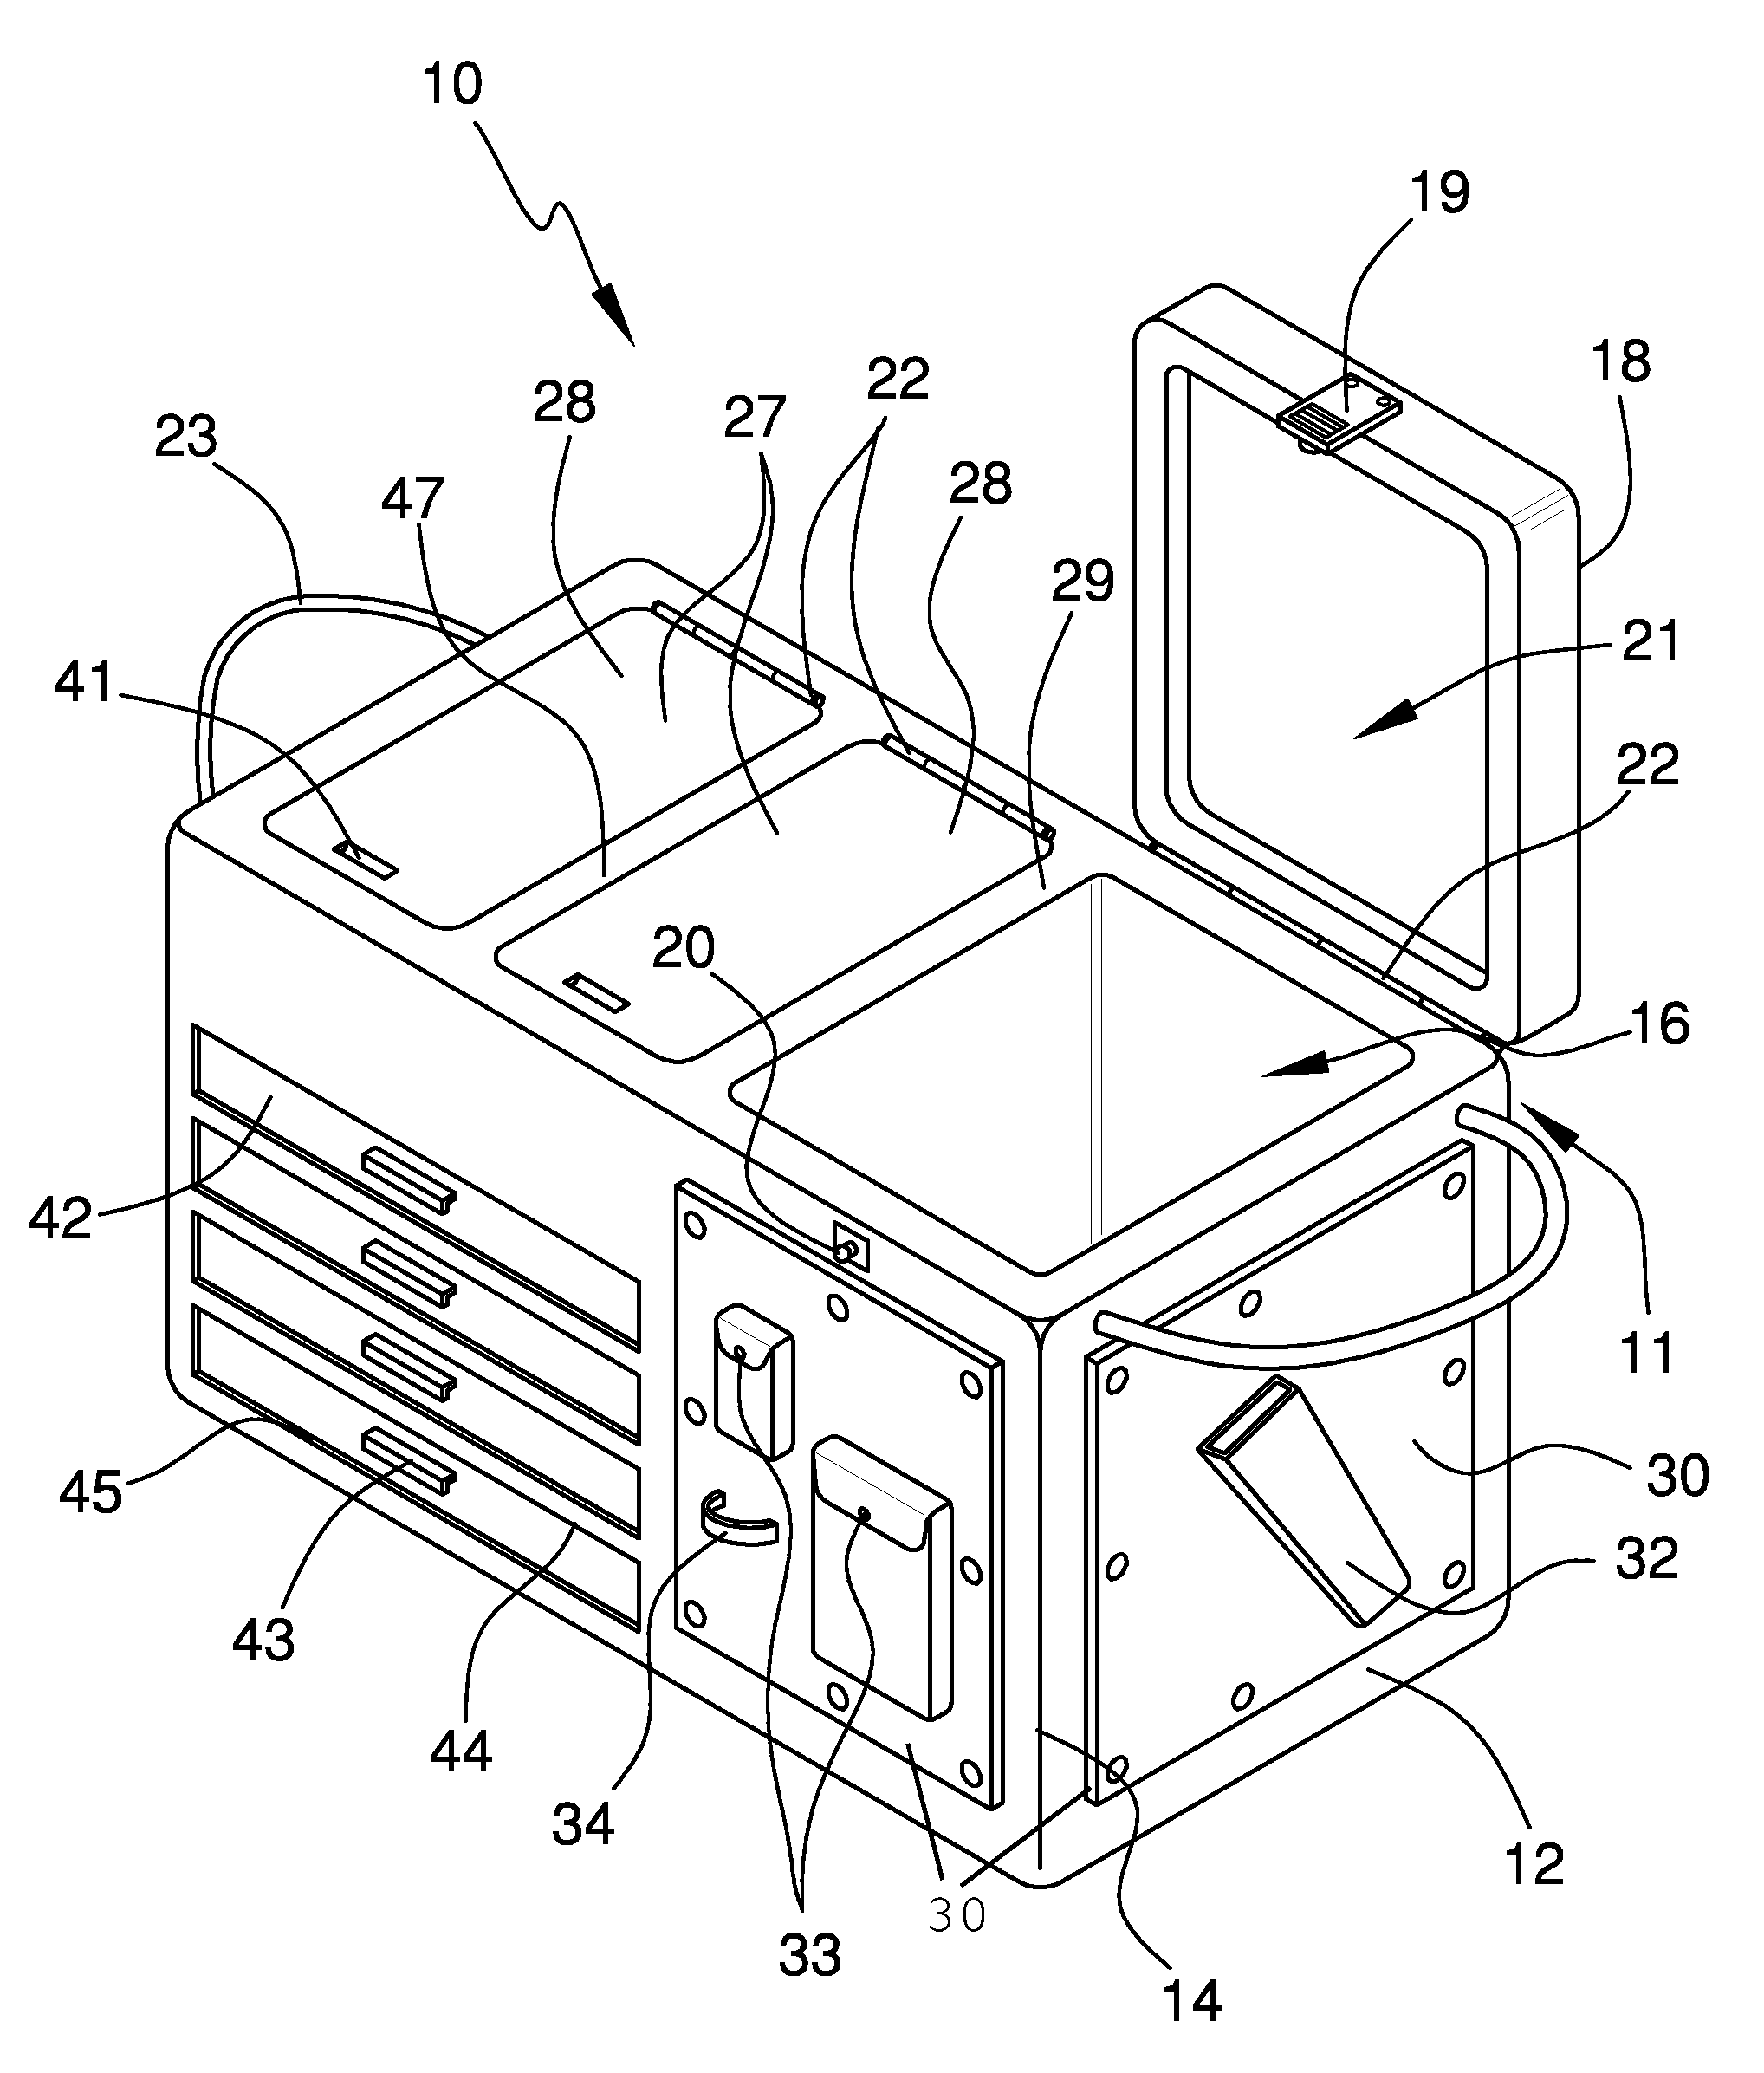 US07415794 20080826 D00000 patent us7415794 portable cooler and tackle box google patents 2001 hyundai xg300 fuse box location at pacquiaovsvargaslive.co